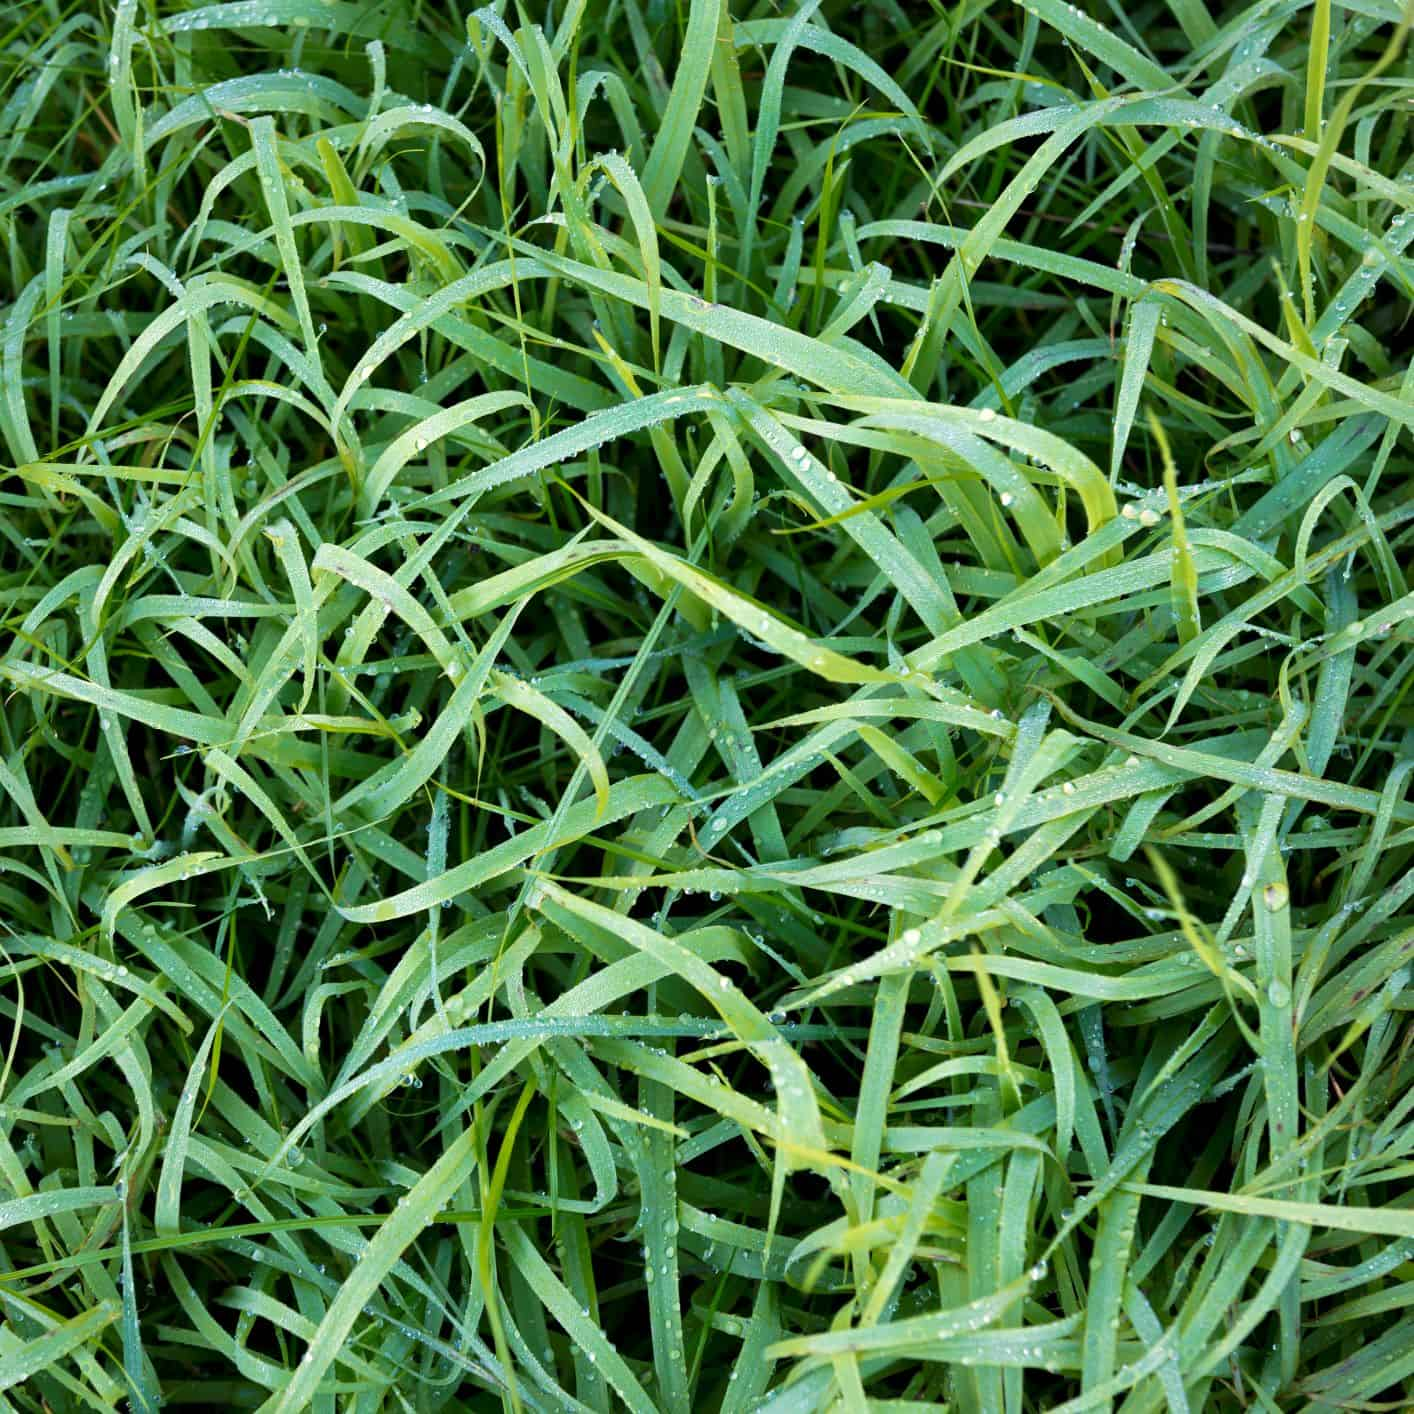 6 Winter Care Tips for Your Lawn